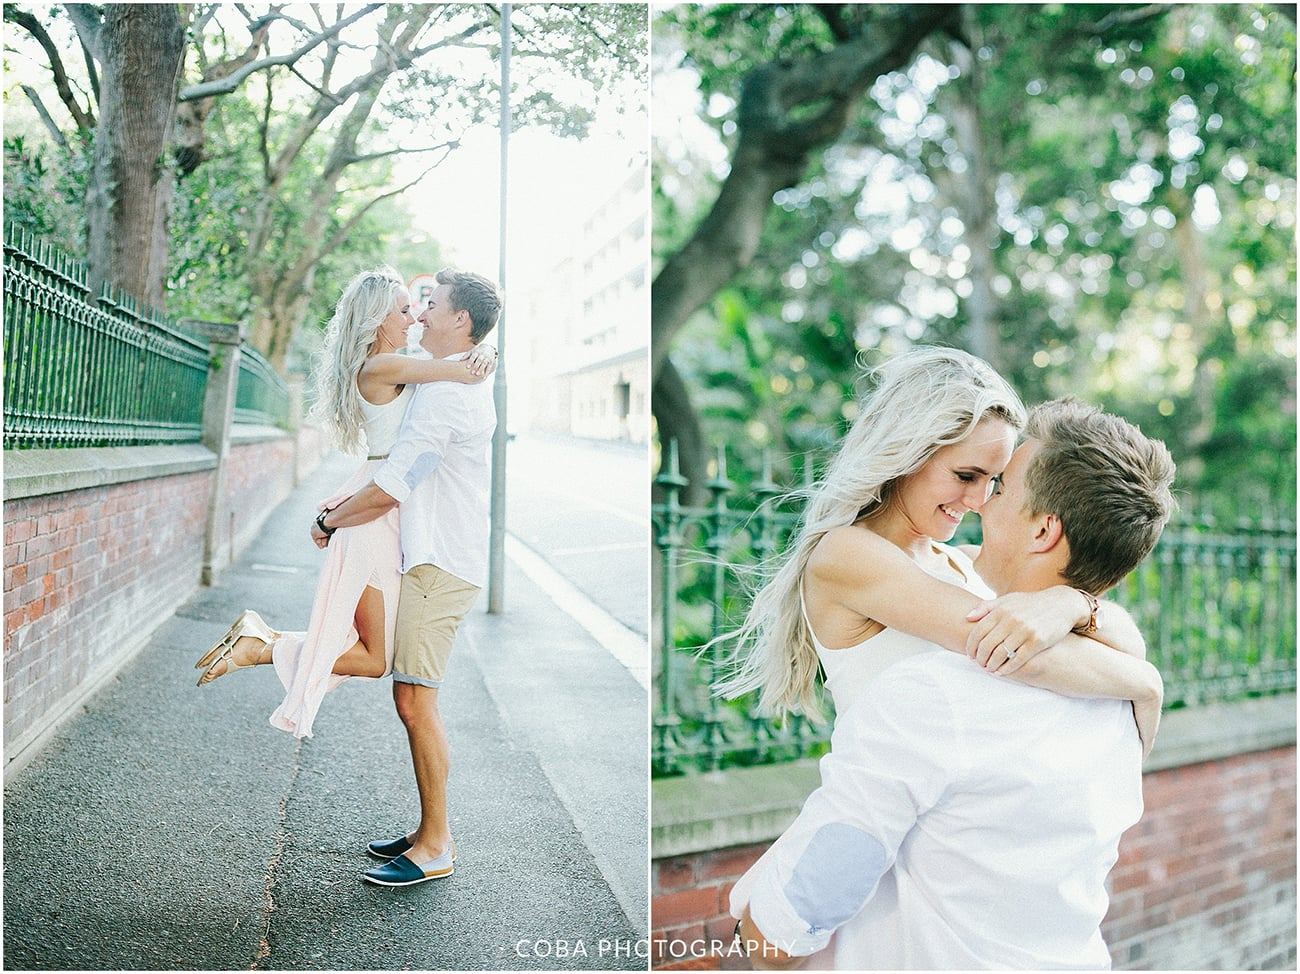 Andre & Tanya - city engagement cape town - coba photography (18)